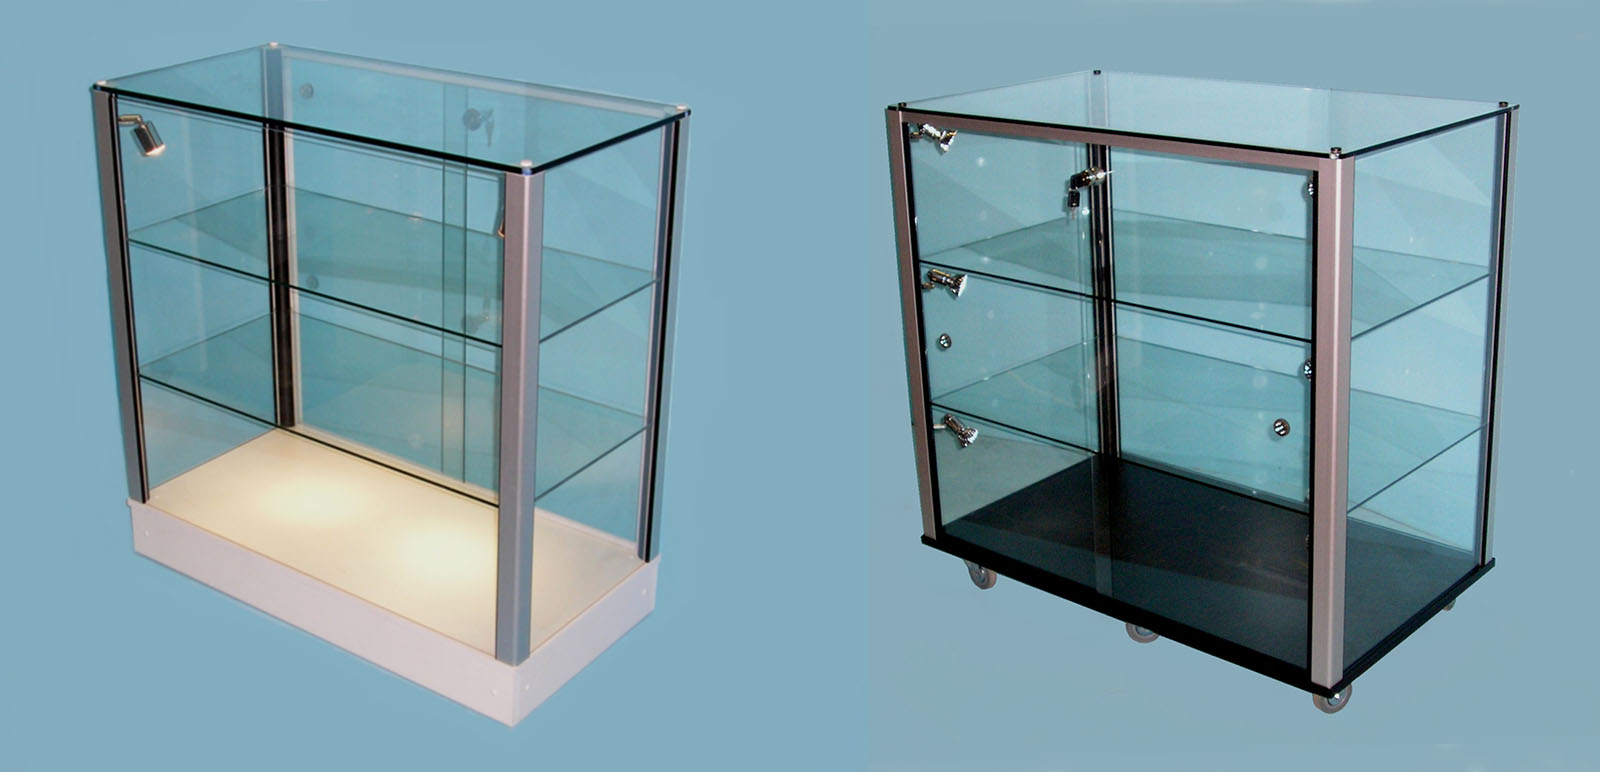 Designex Cabinets counter glass display cabinets